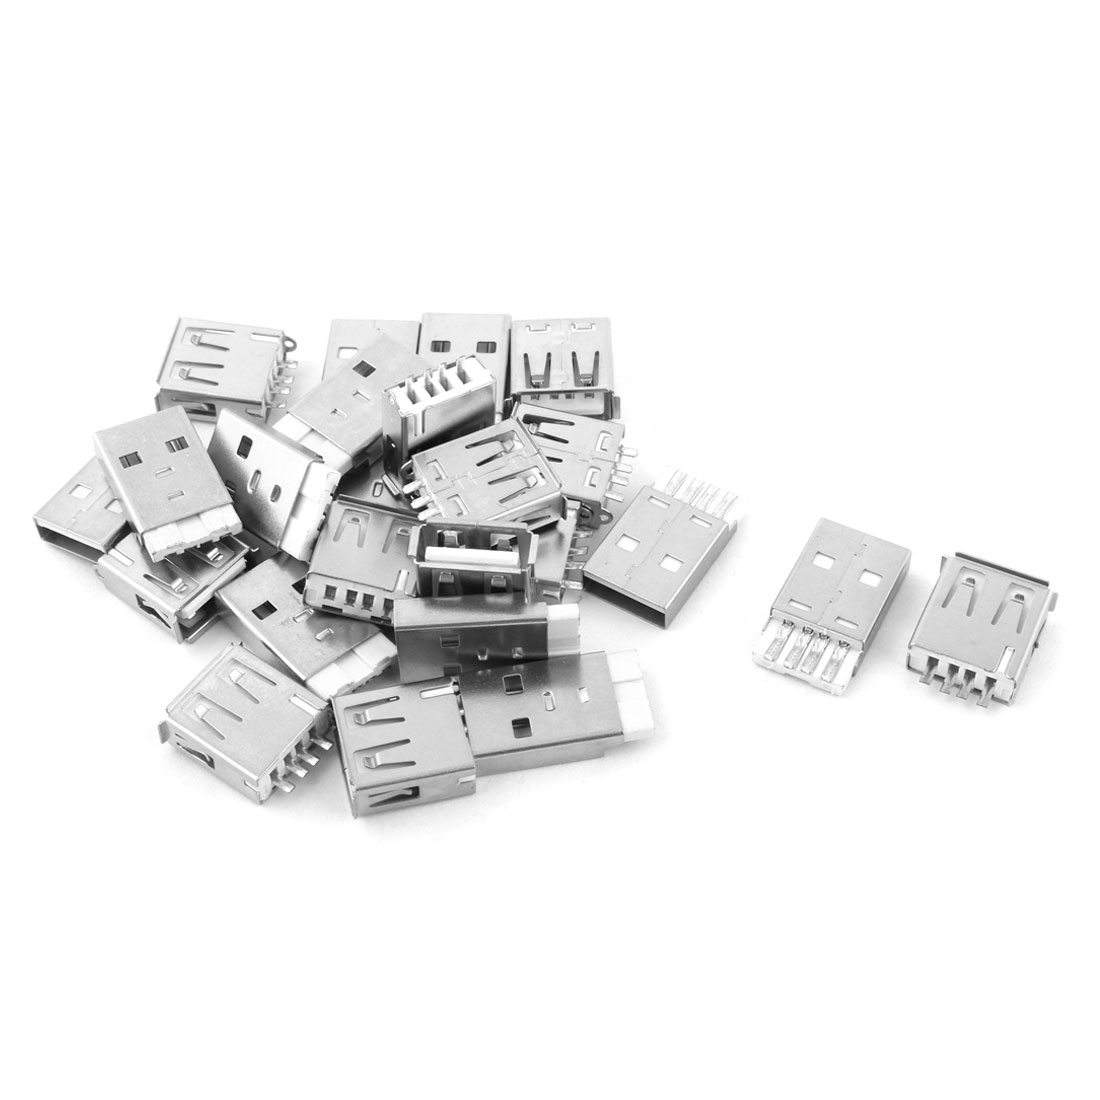 USB 2.0 Type A Solder Female 4 Pins Male Connector Socket Silver Tone 12 Pairs